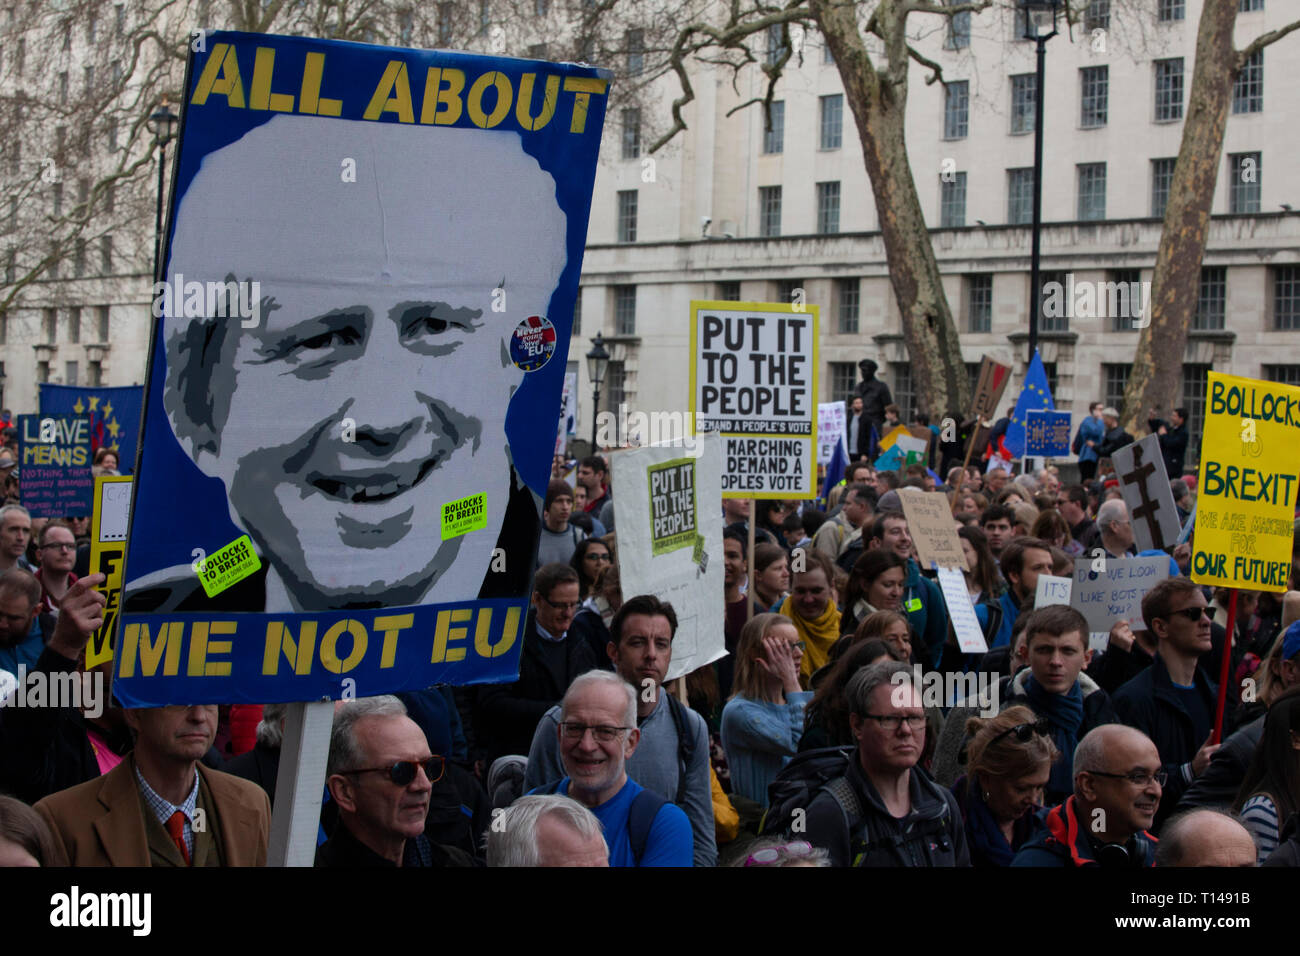 London, UK. 23rd March, 2019.  The Put it to the People March in London: people with home-made placards march past the gates of Downing Street on Whitehall. Credit: Anna Watson/Alamy Live News Stock Photo